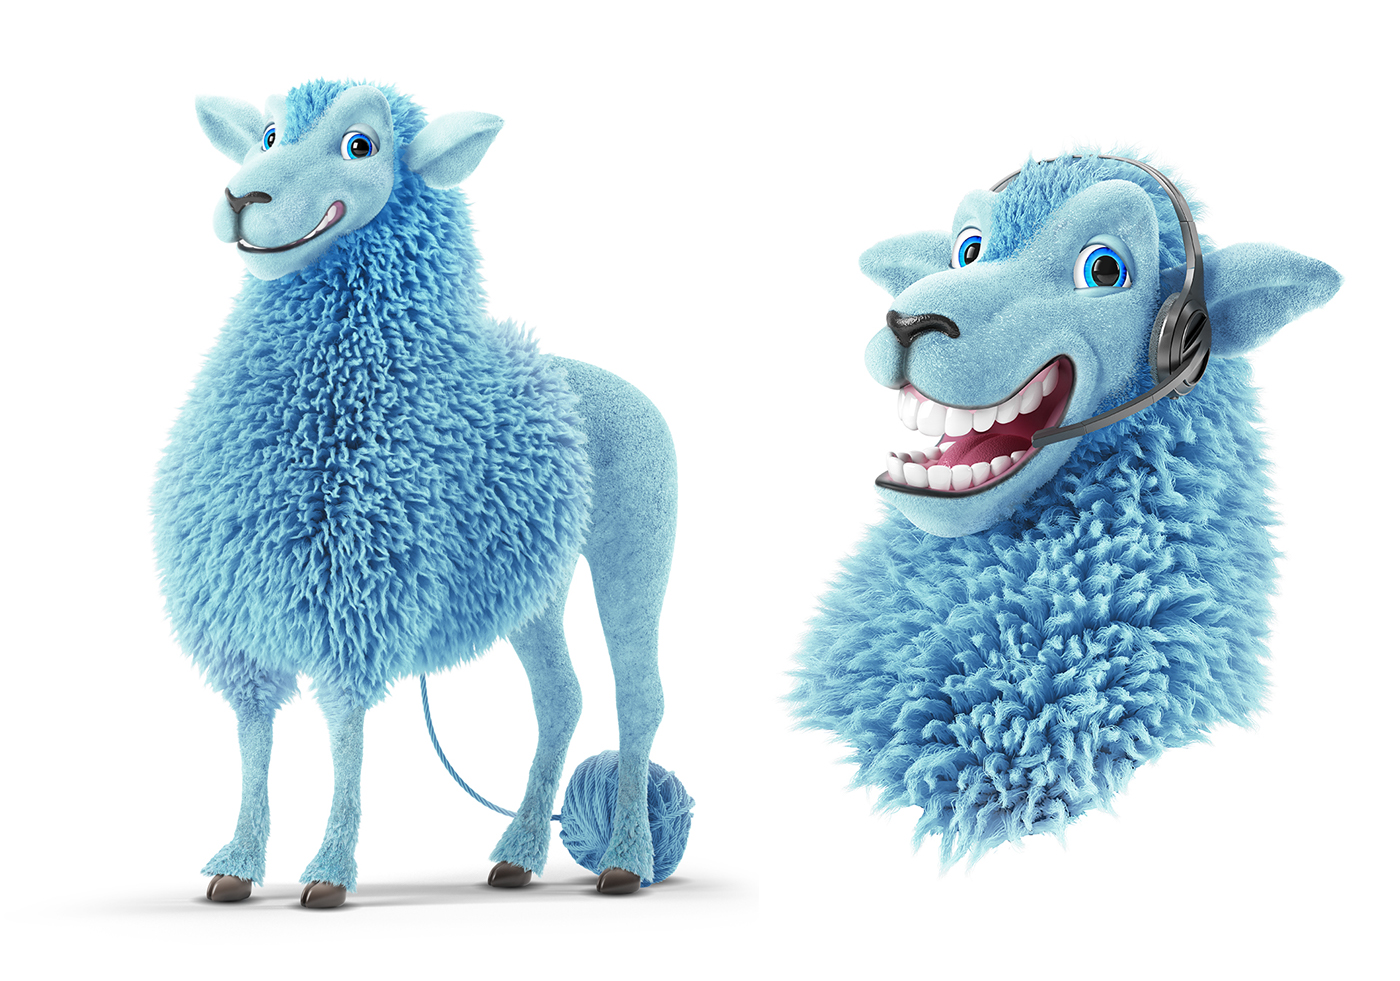 Character Design Site : Baa rney the sheep d furry character breakdown on behance